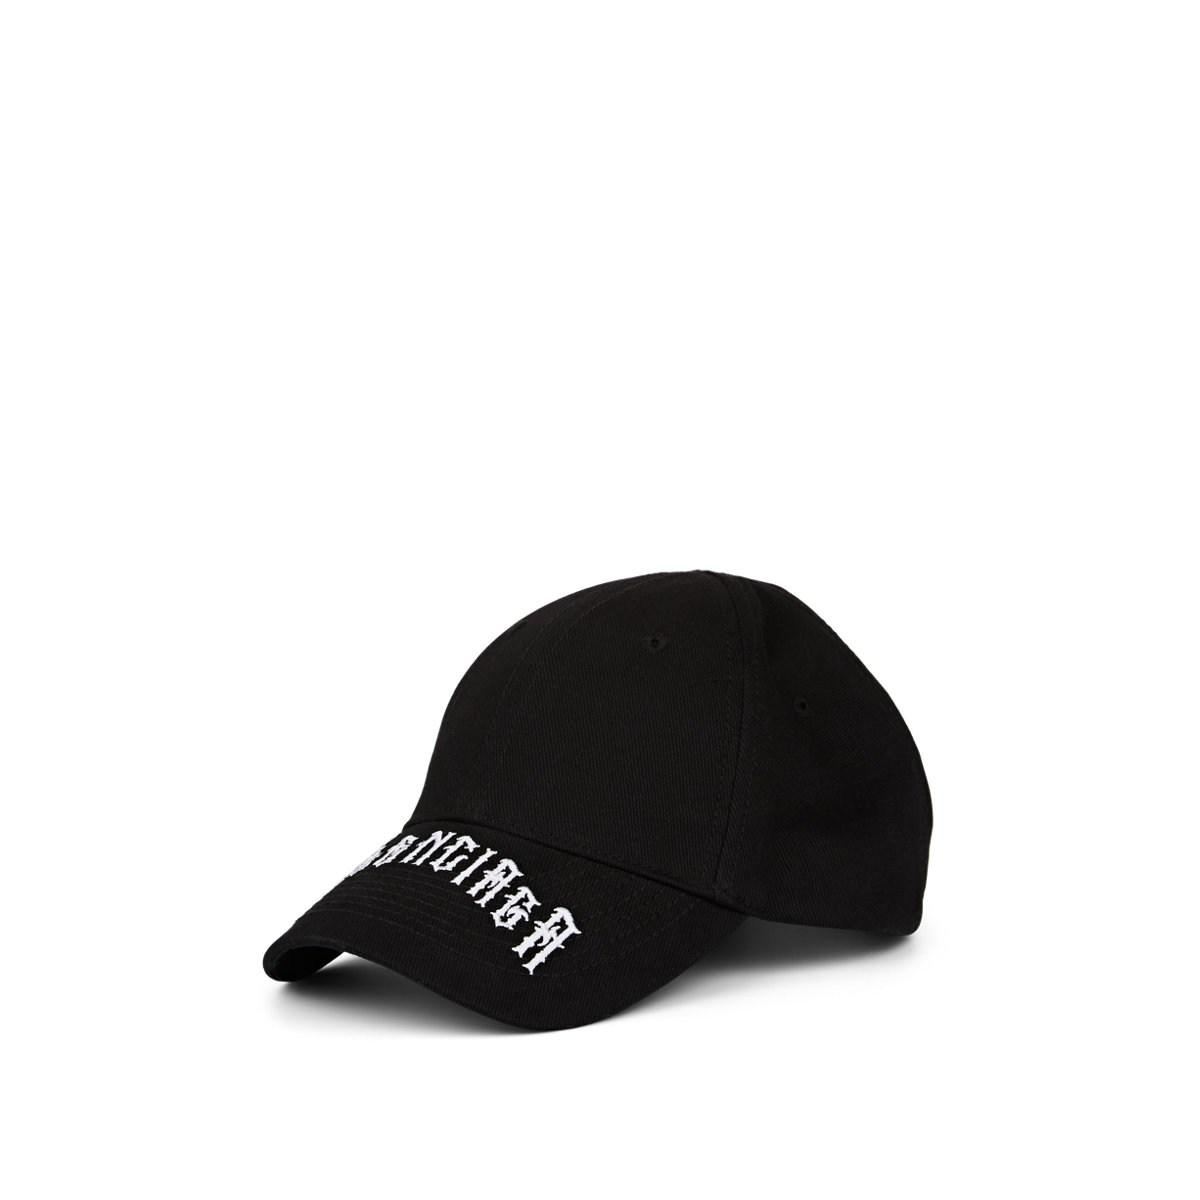 24359b41c Men's Black Gothic-logo-embroidered Cotton Cap